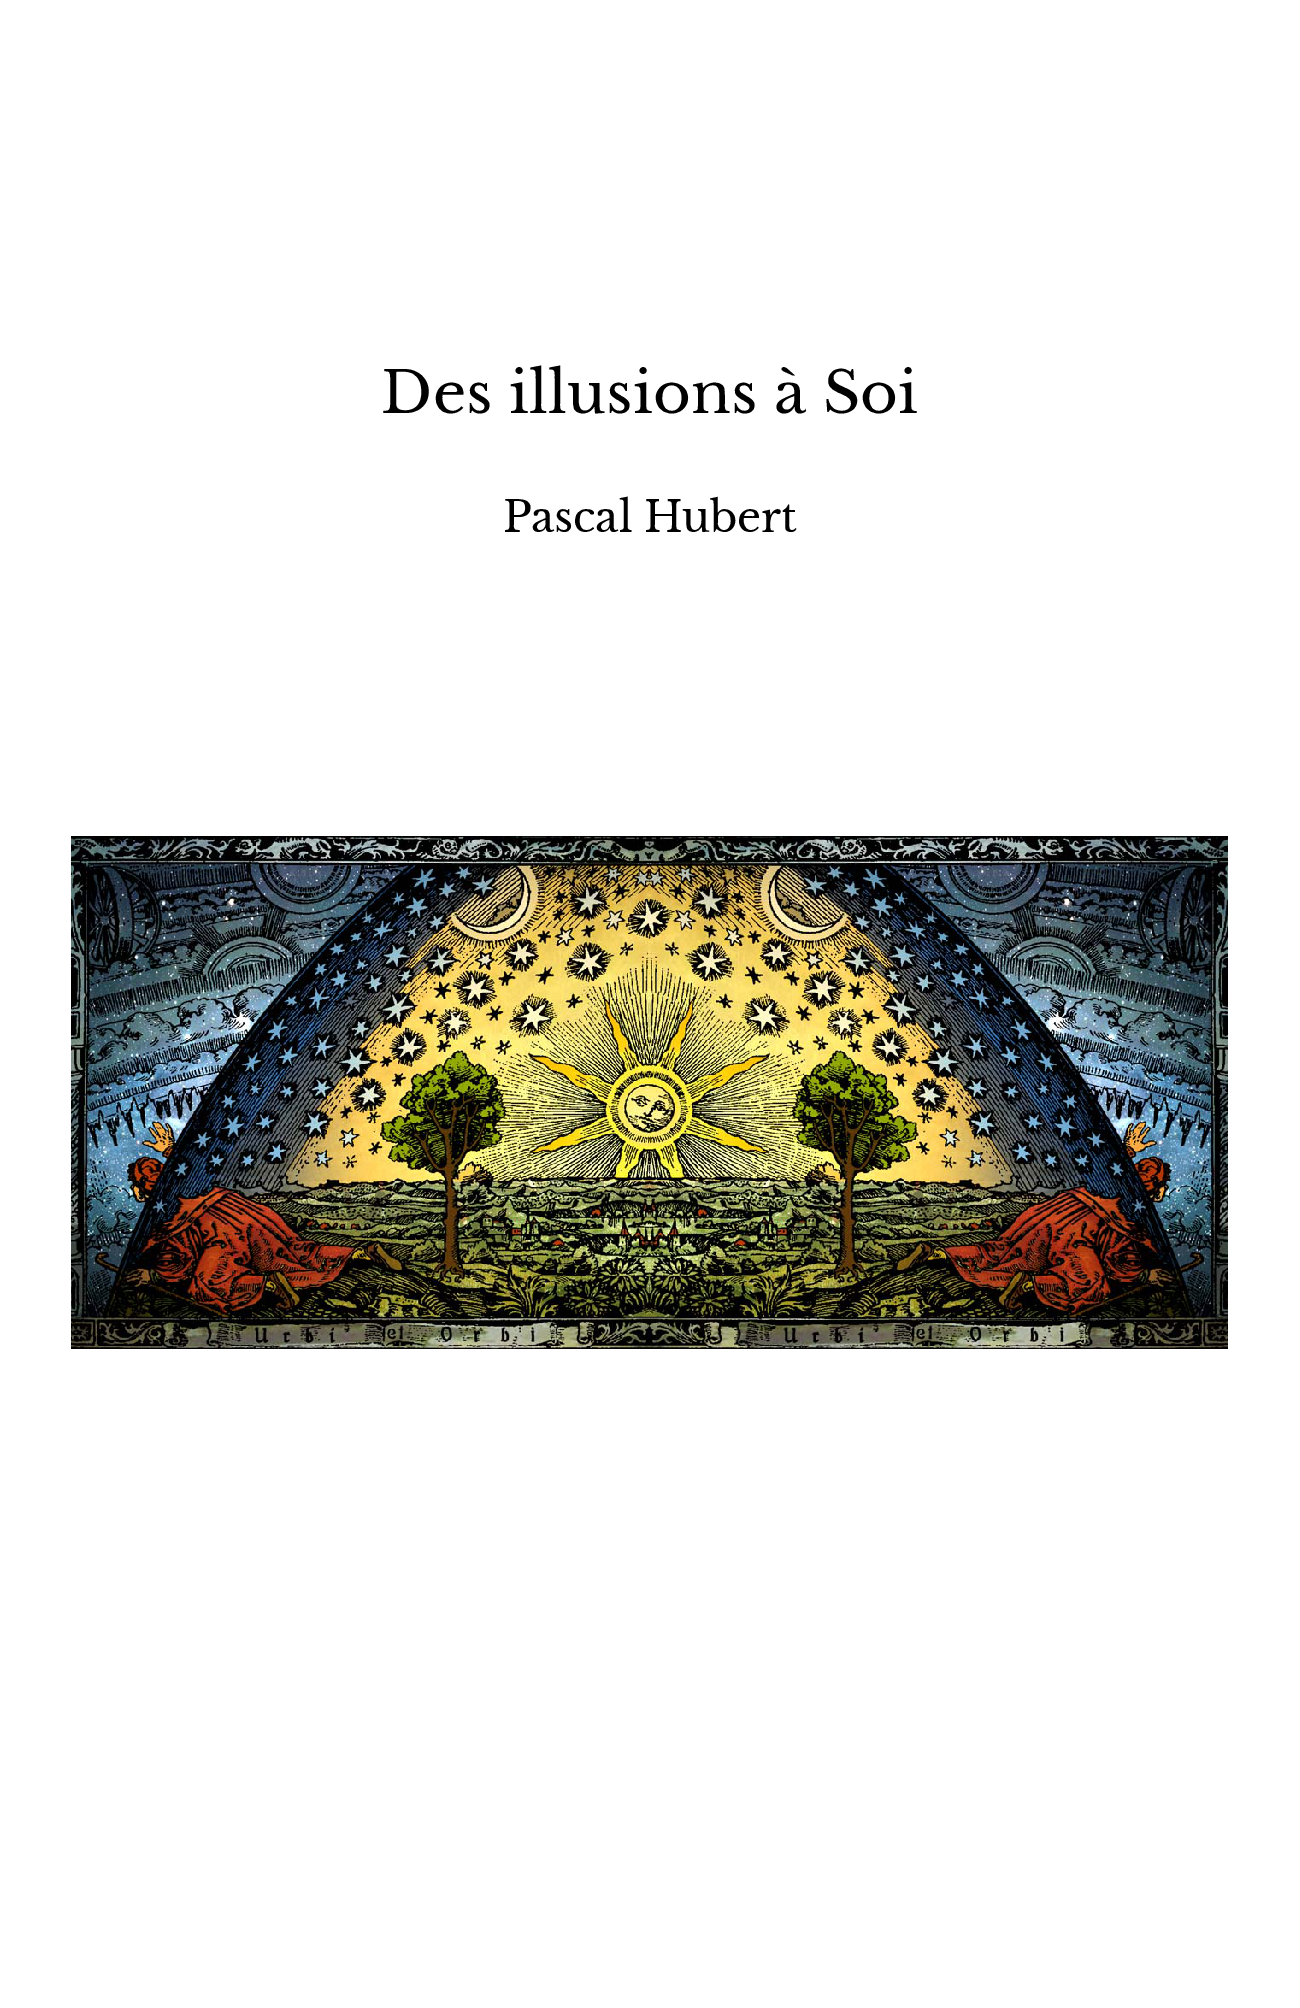 Des illusions à Soi